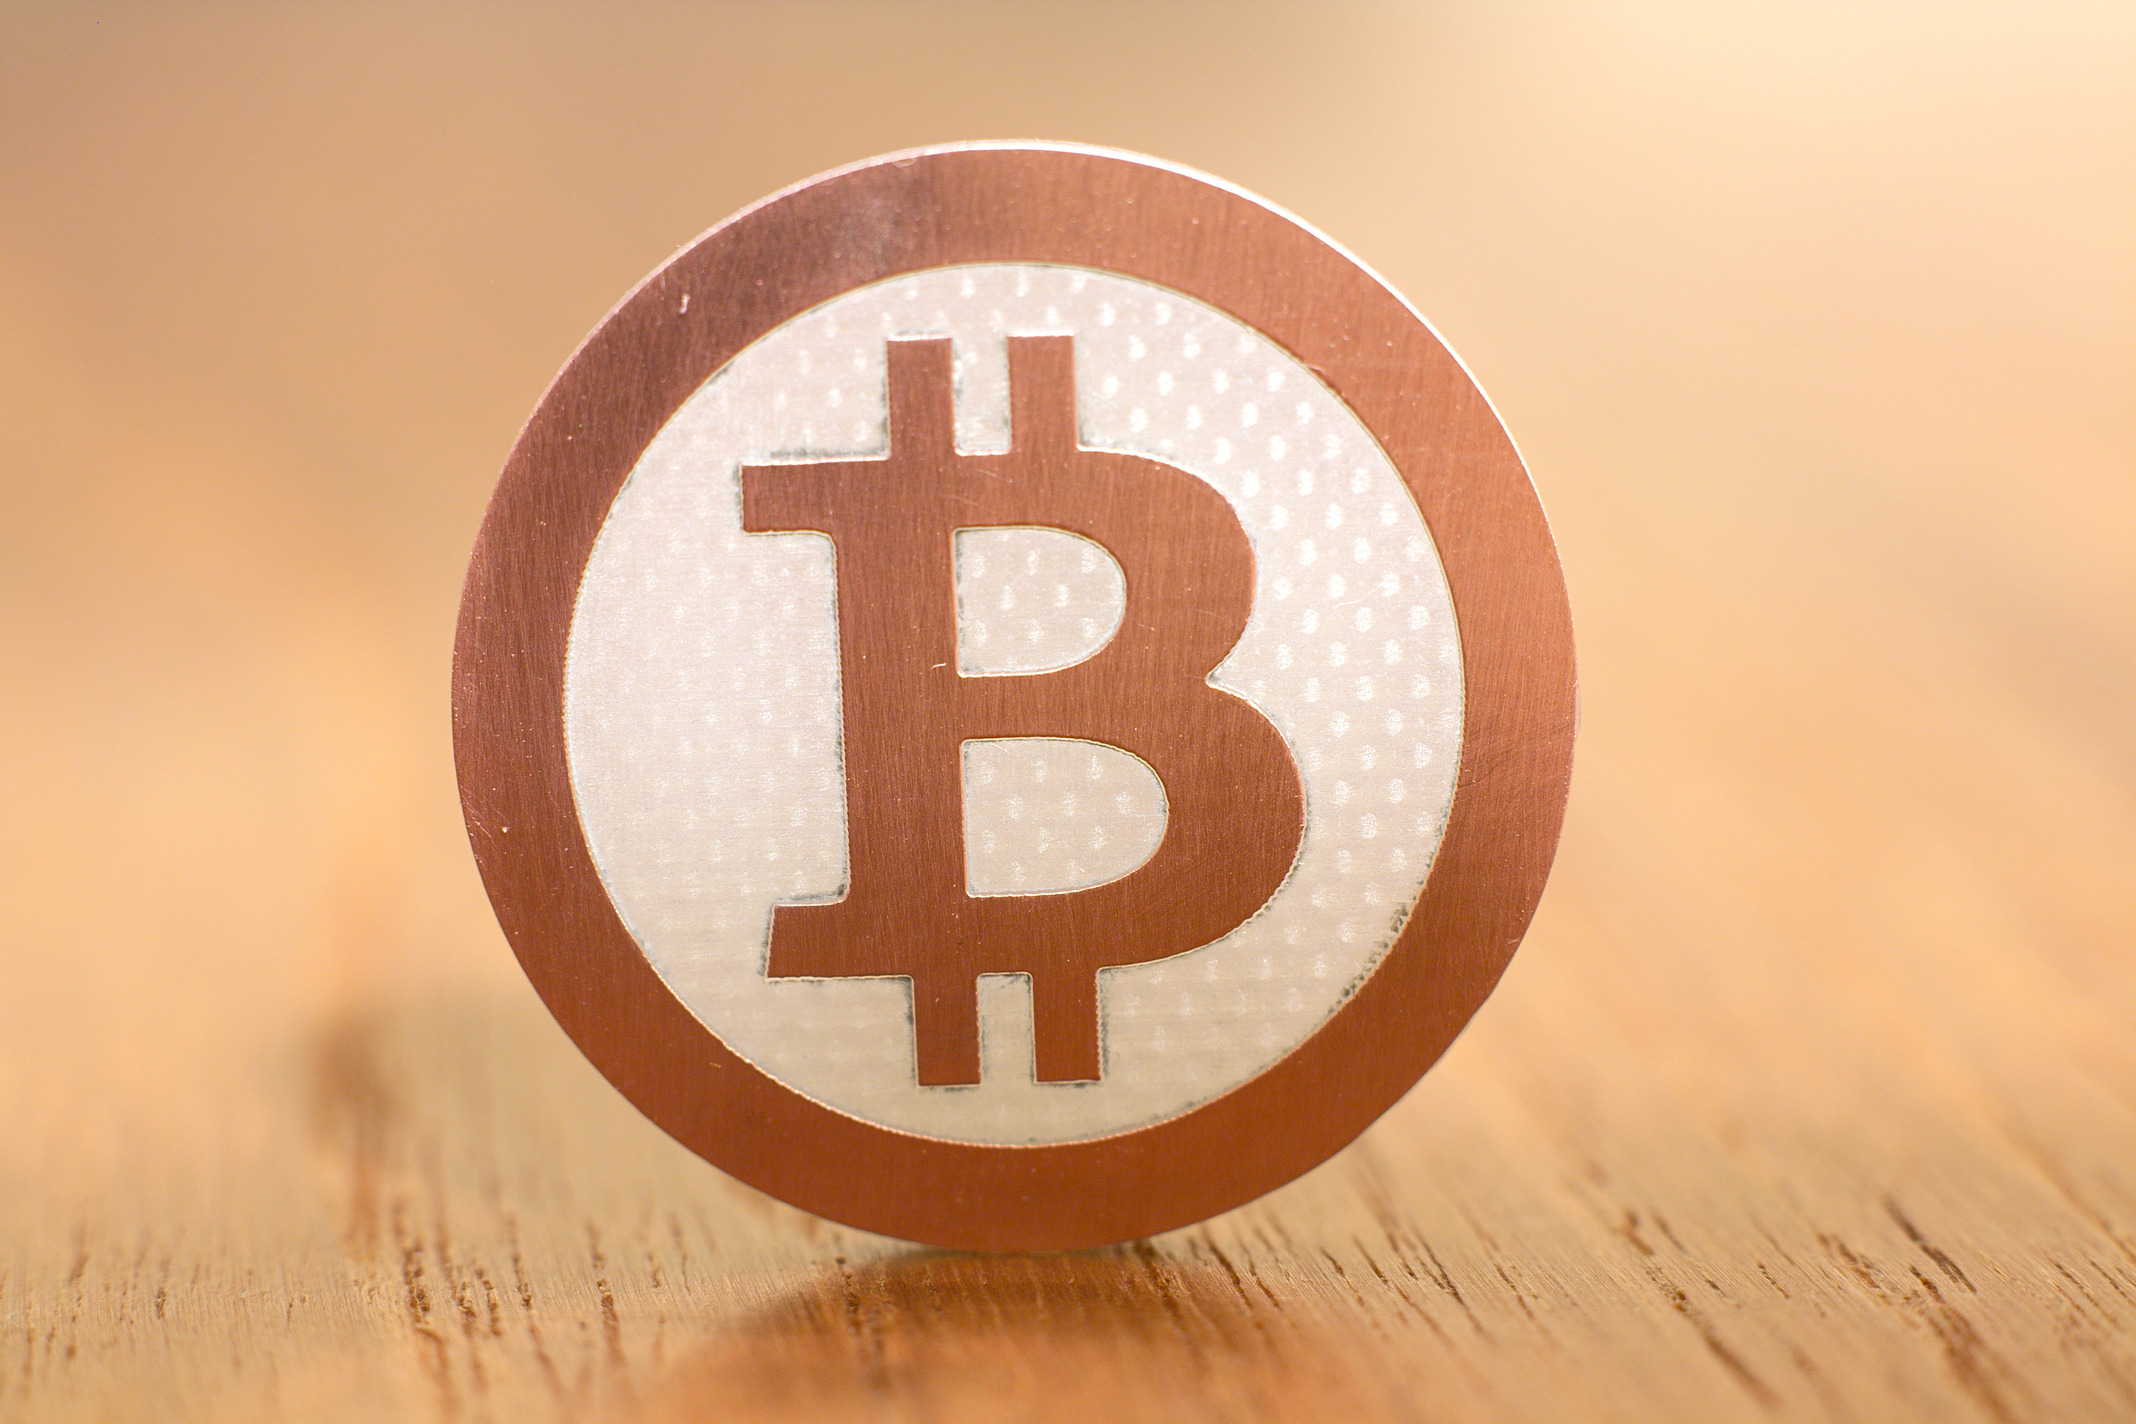 Bitcoin miner what is it